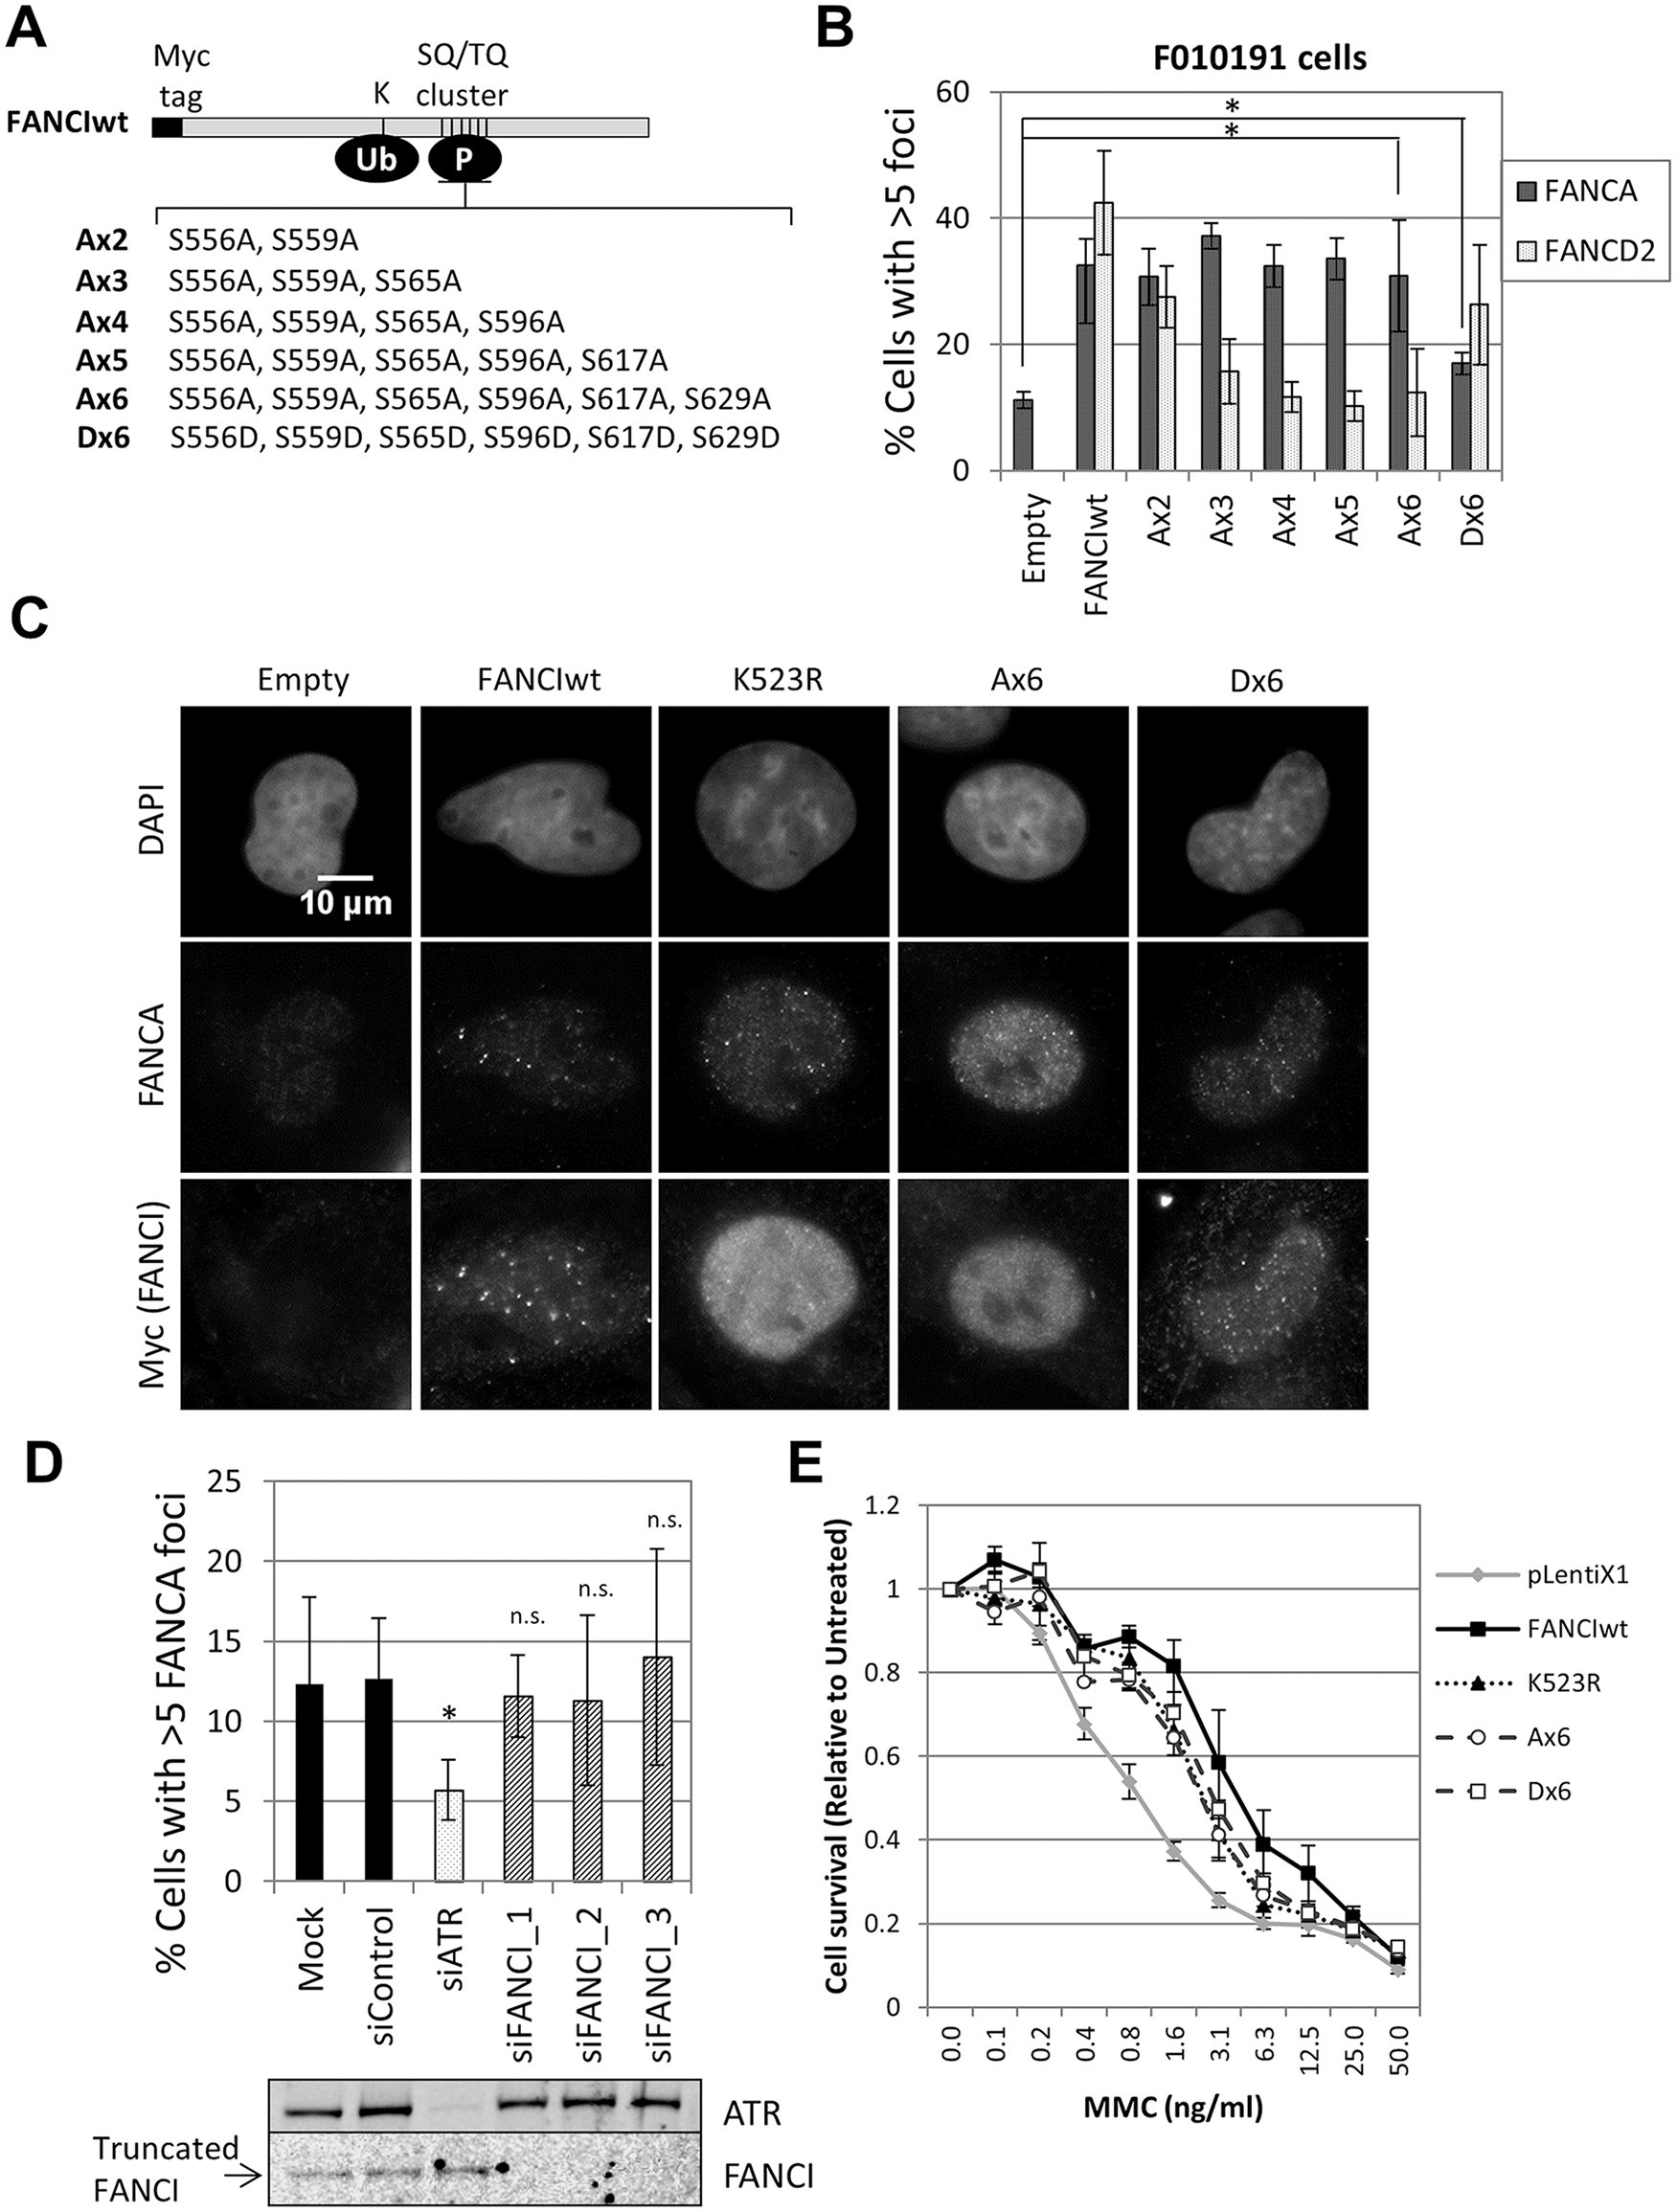 FANCI phosphorylation is not required for FA core complex foci formation.